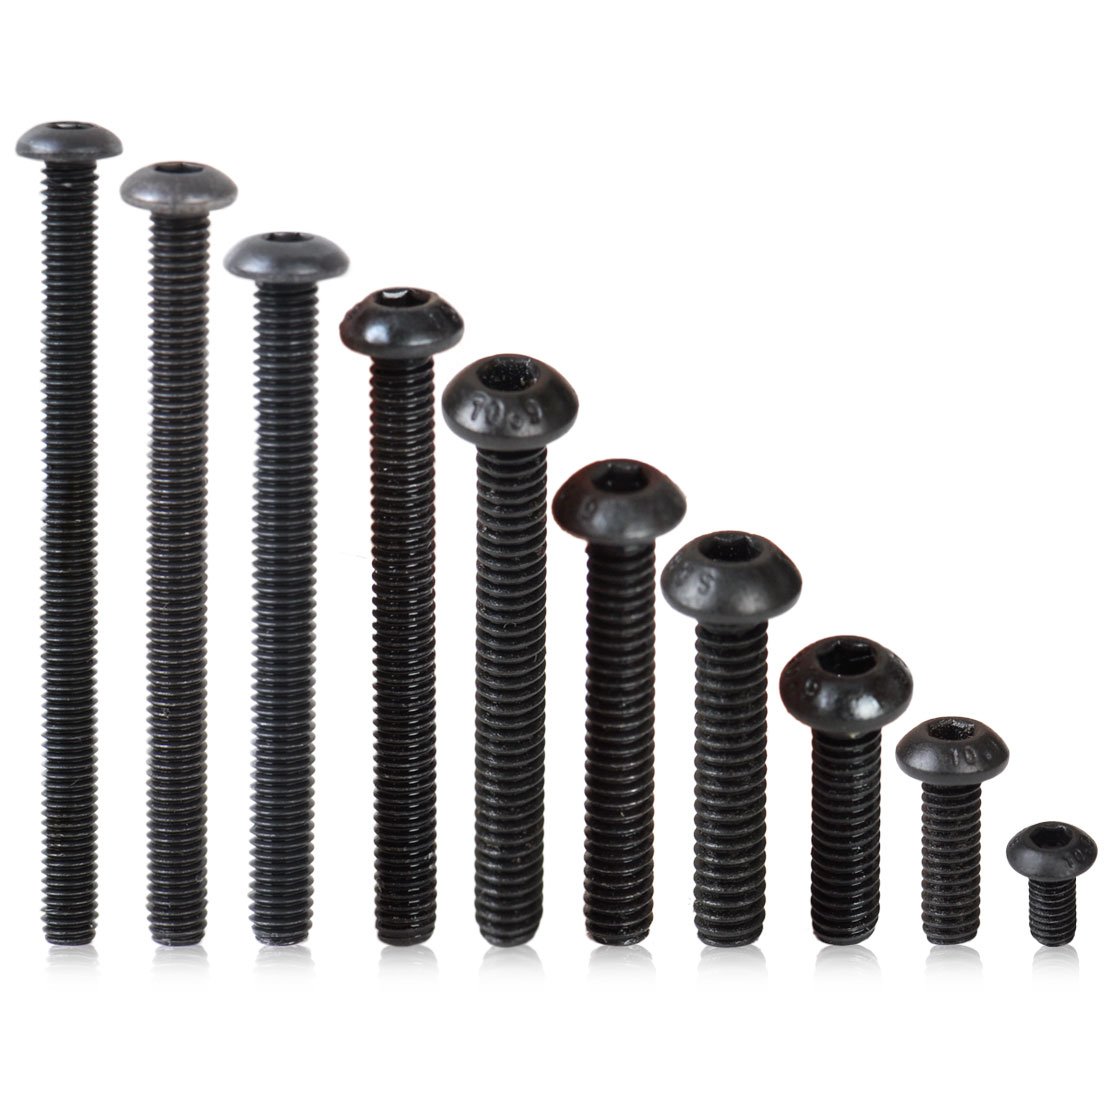 100pcs Metric M4 Black 10.9 Carbon Steel Flat Countersunk Head Hex Socket Screw